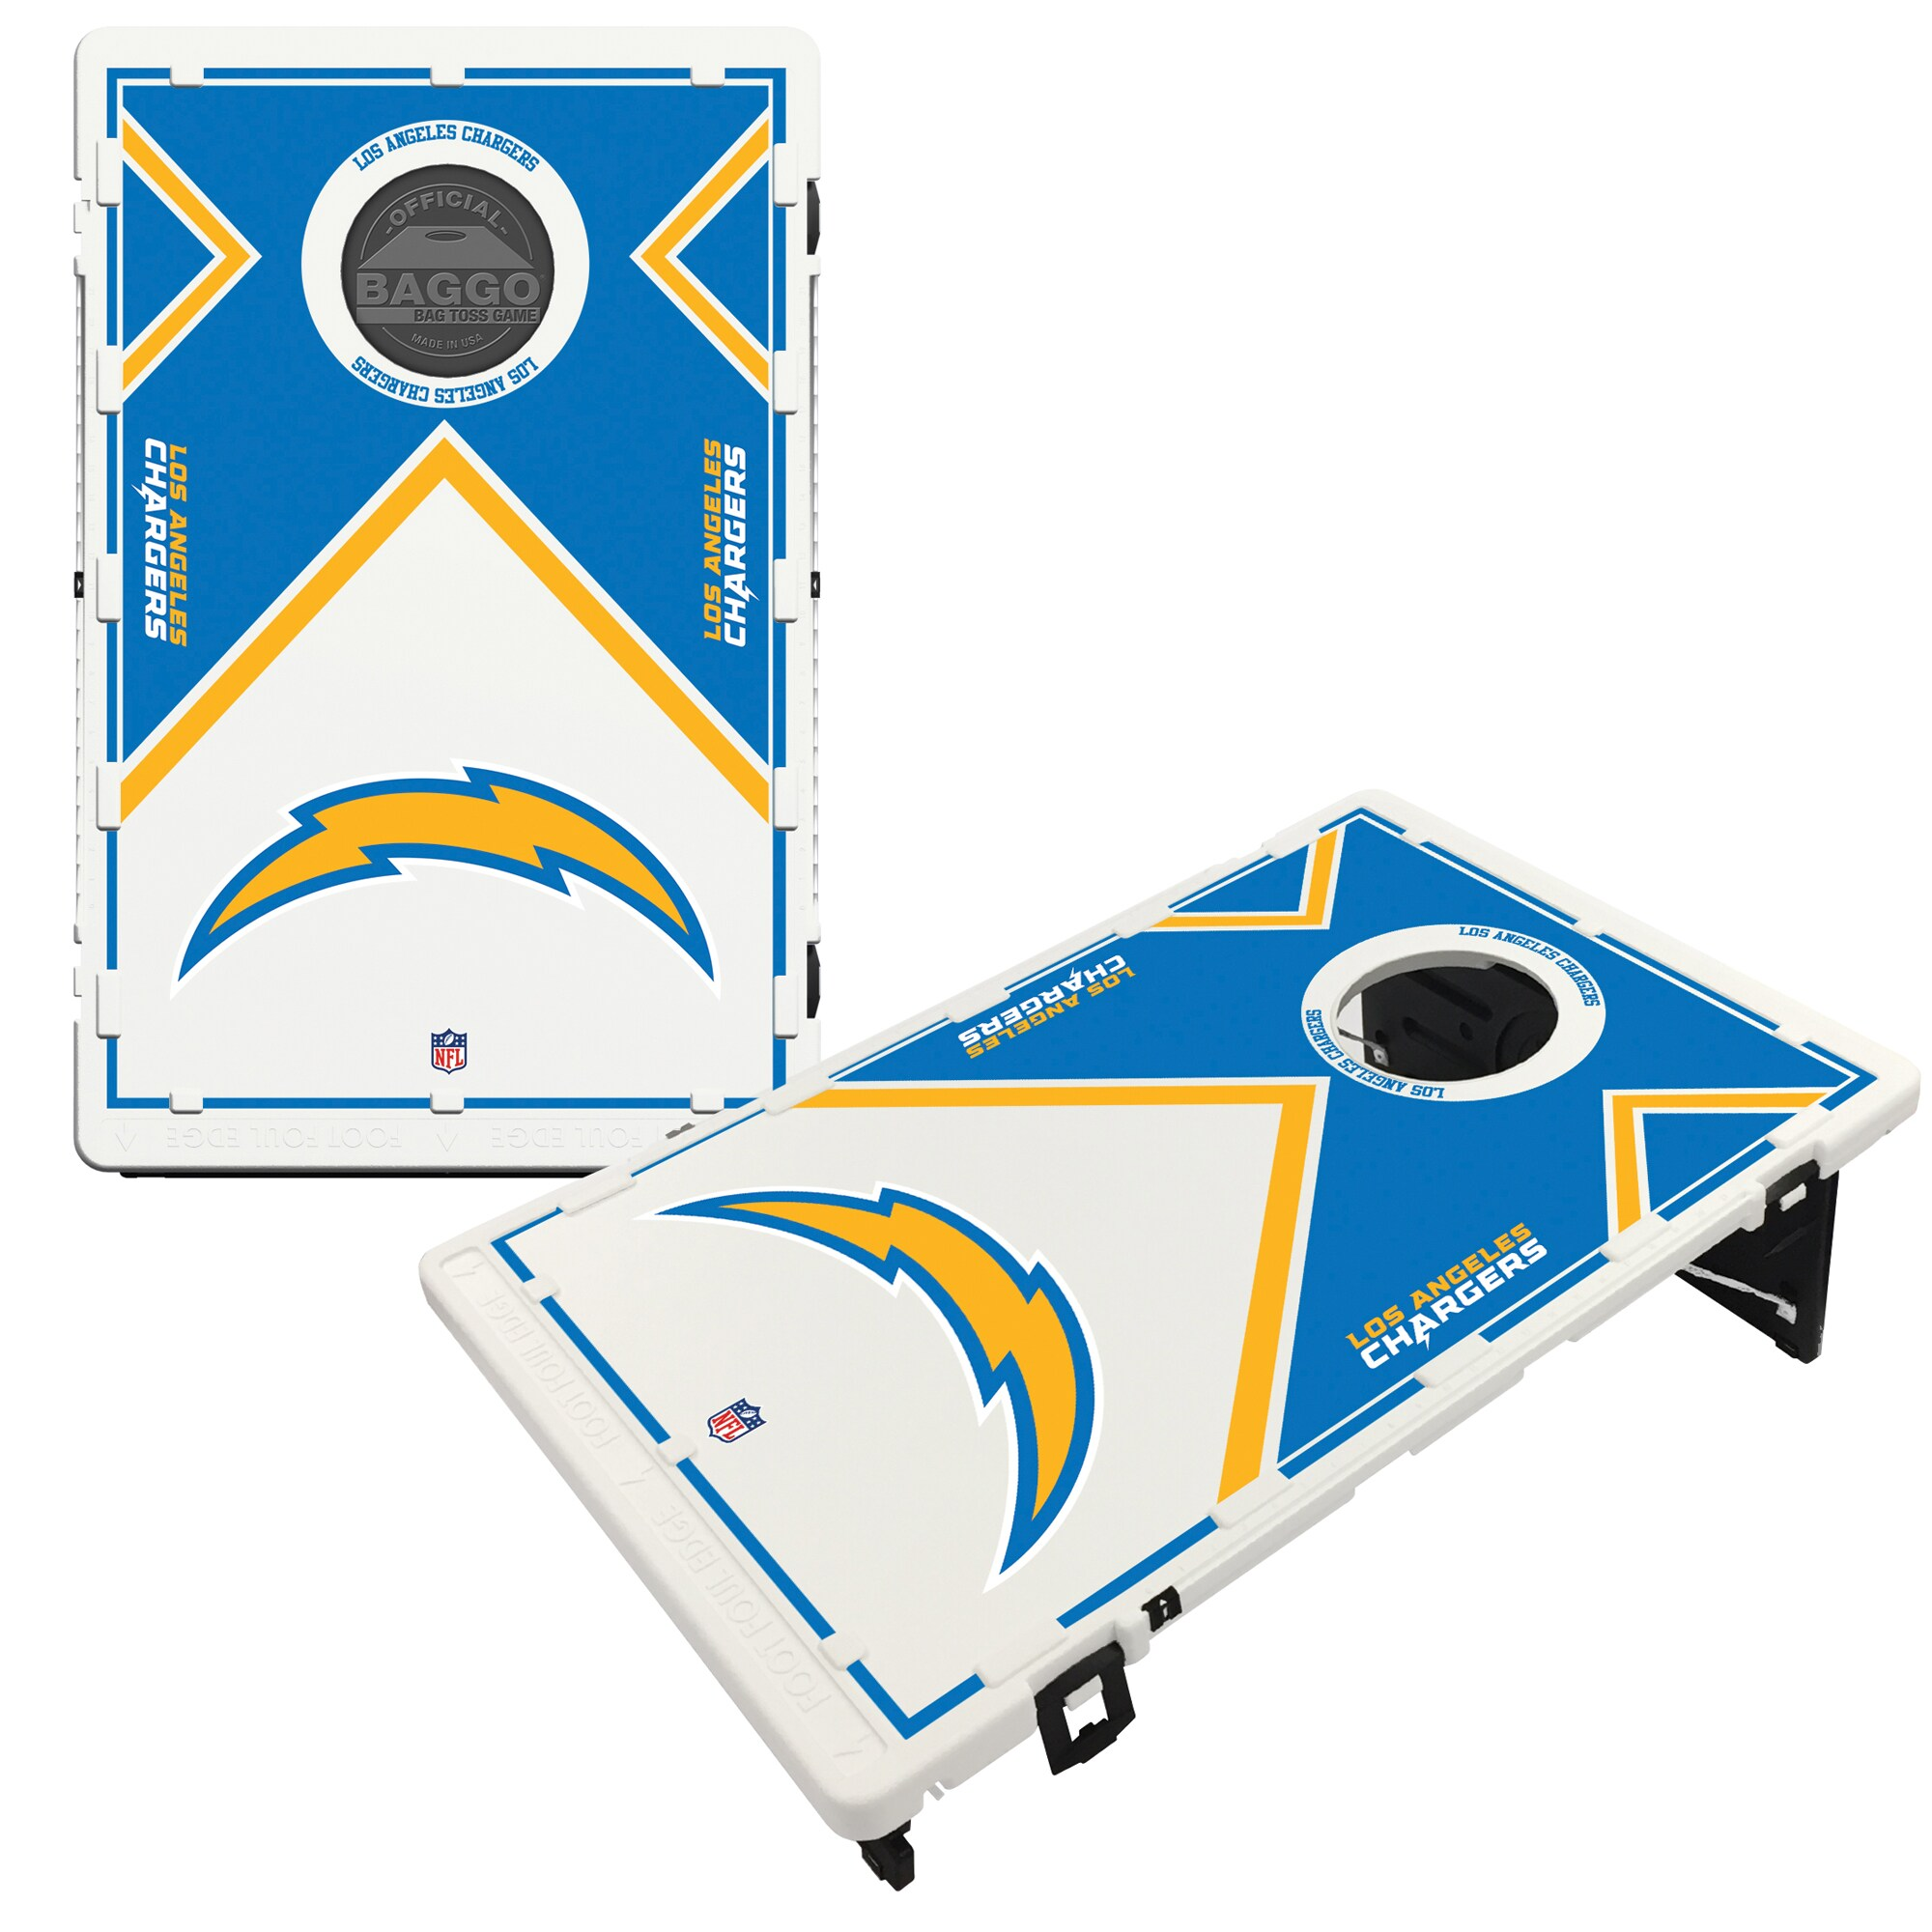 Los Angeles Chargers 2' x 3' BAGGO Vintage Cornhole Board Tailgate Toss Set